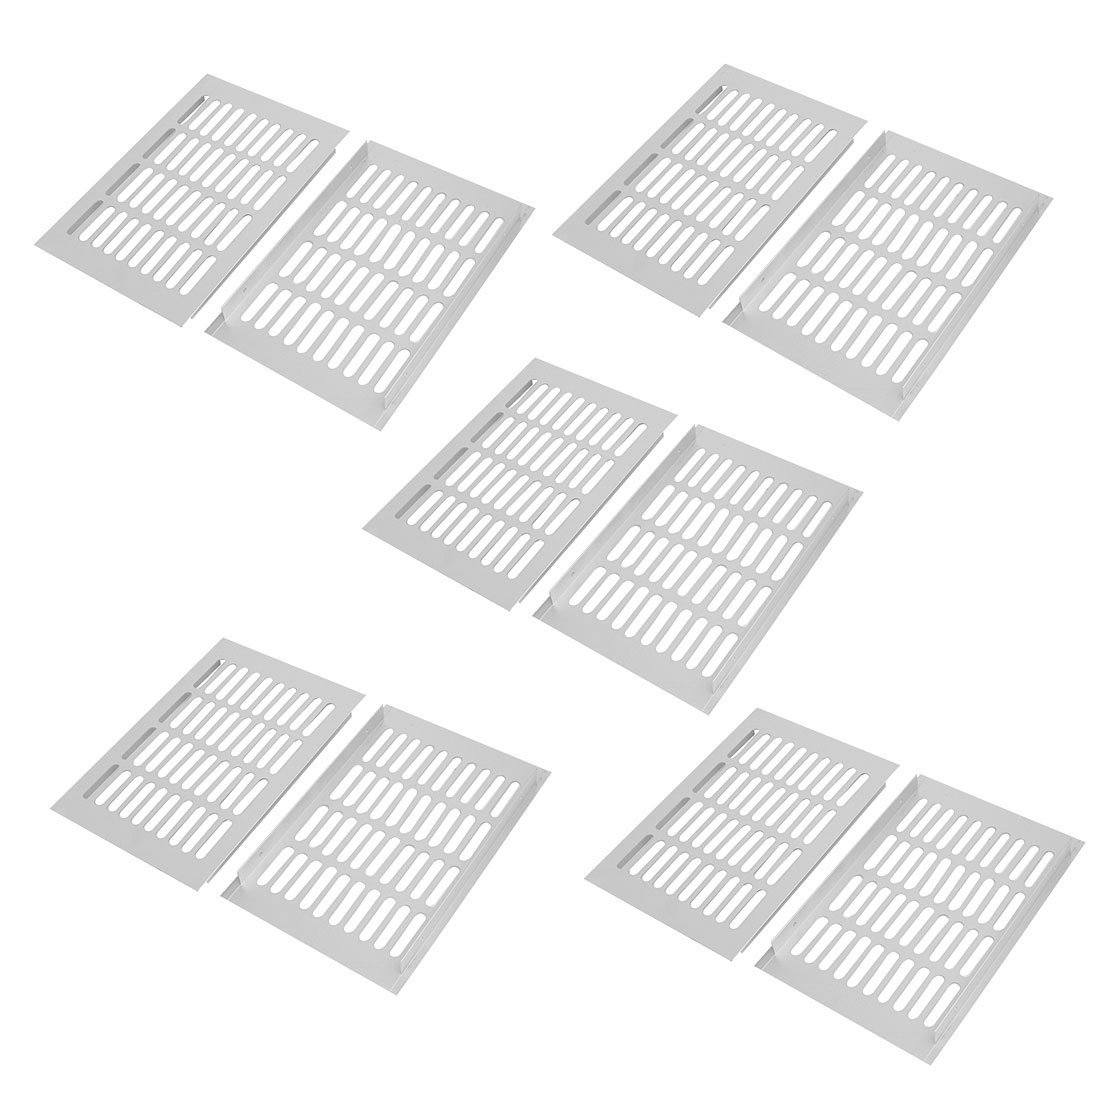 uxcell 150mm x 225mm Aluminum Alloy Wardrobe Cupboard Ventilation Air Vent Grille 10pcs